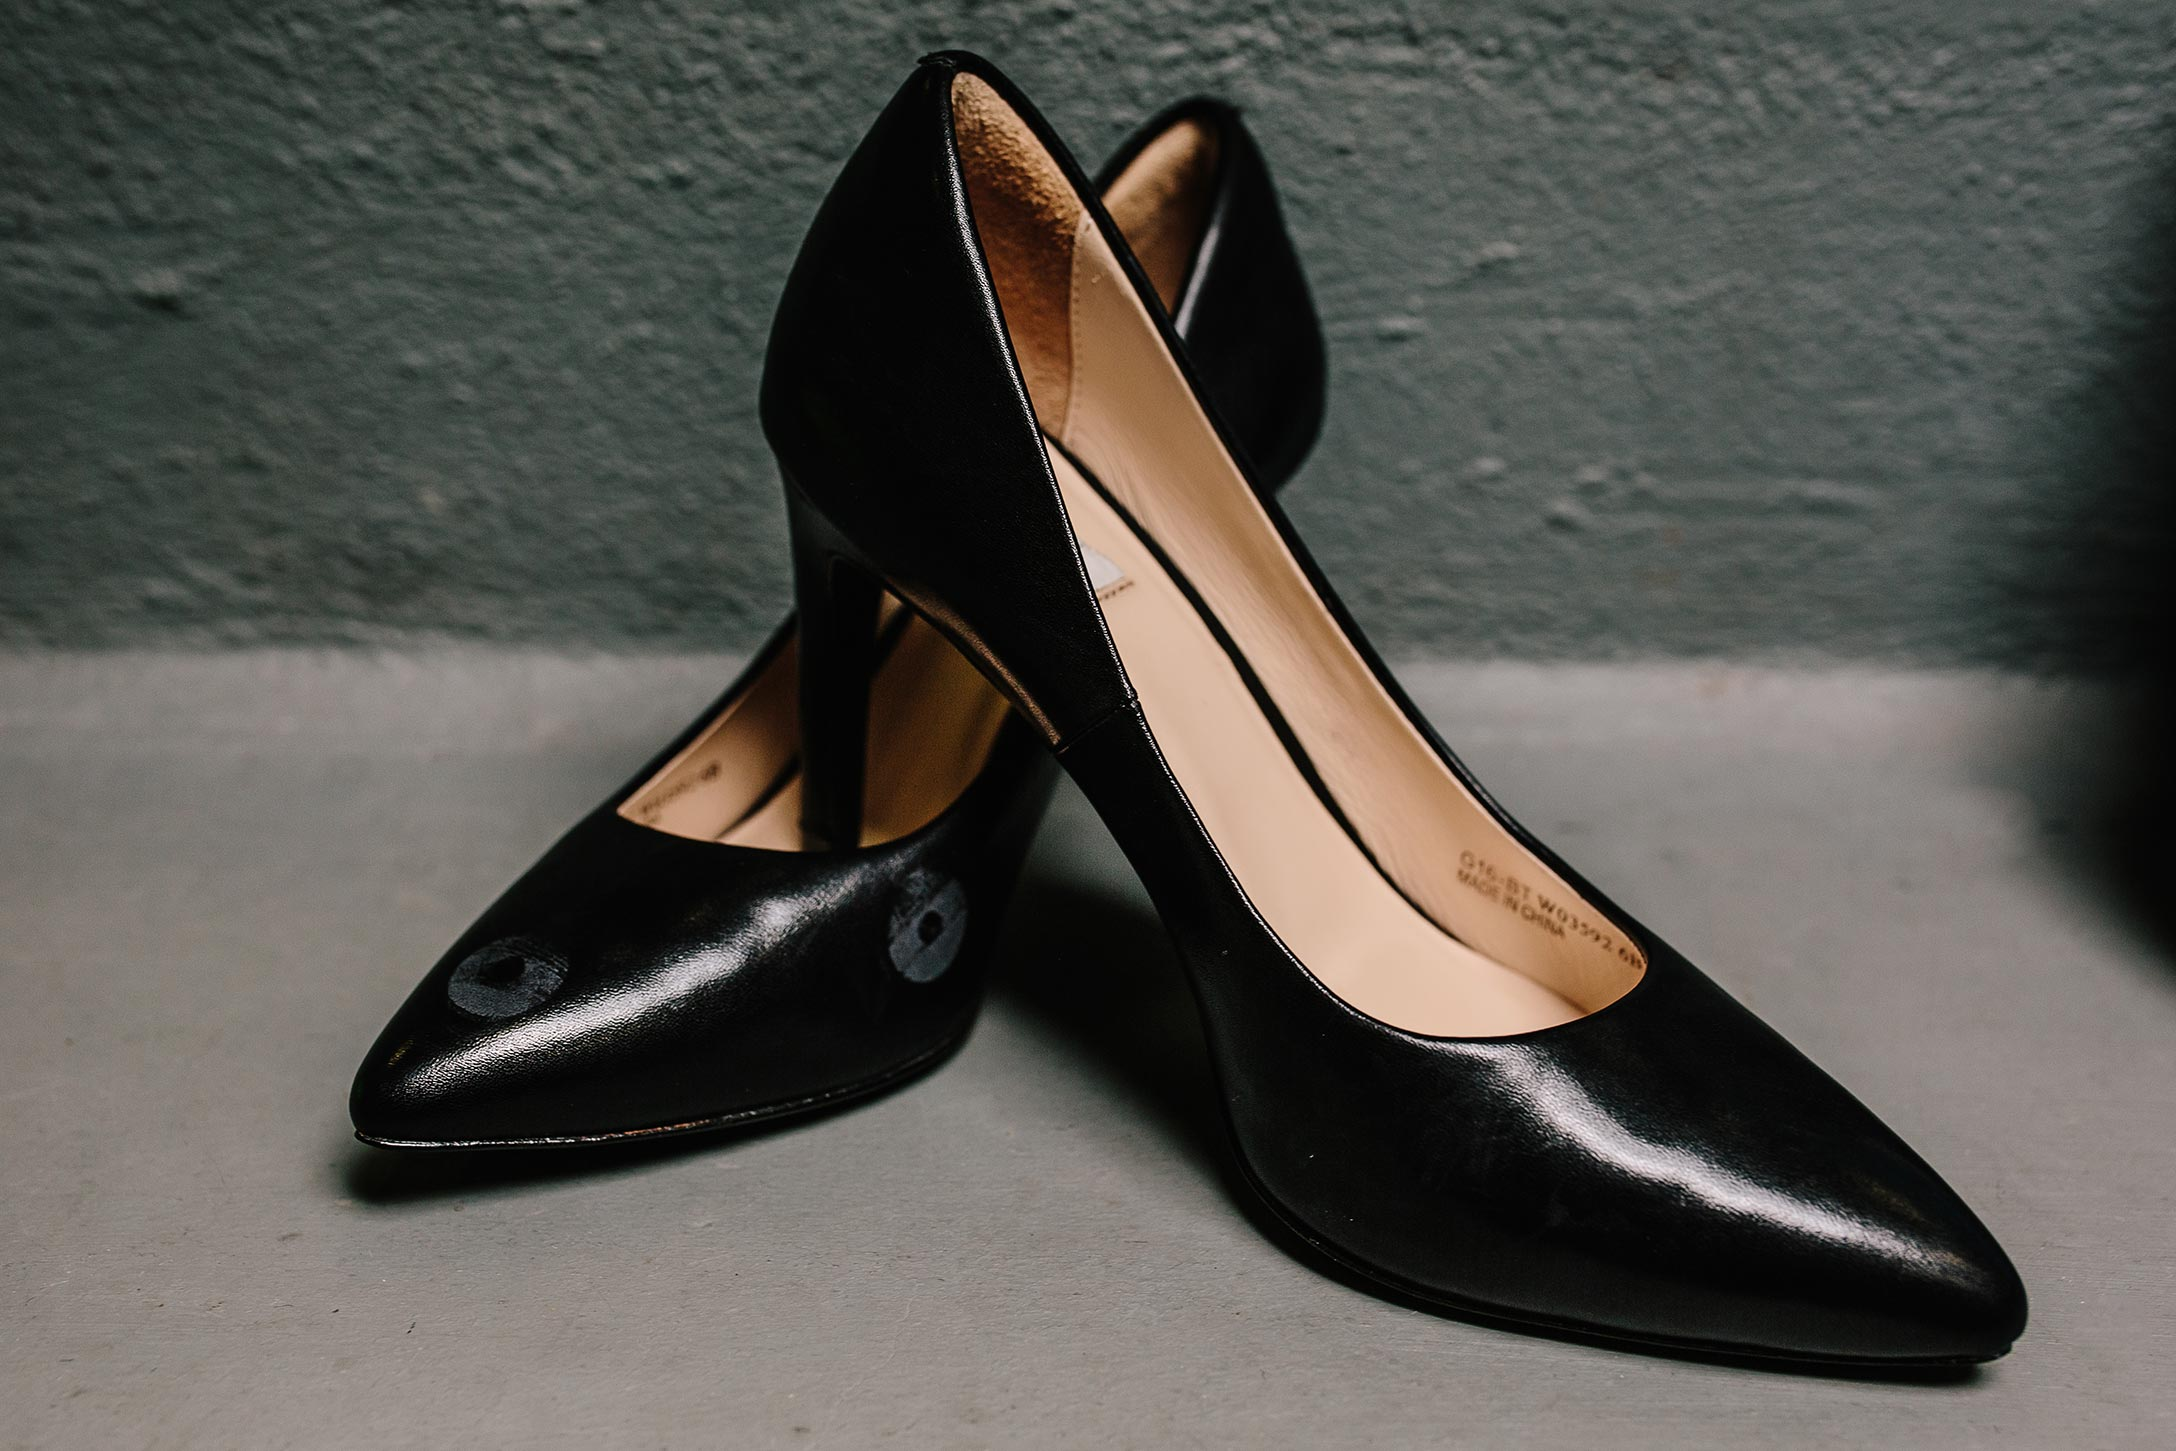 a pair of black leather high heeled shoes from the Cole Haan Grand Ambition collection